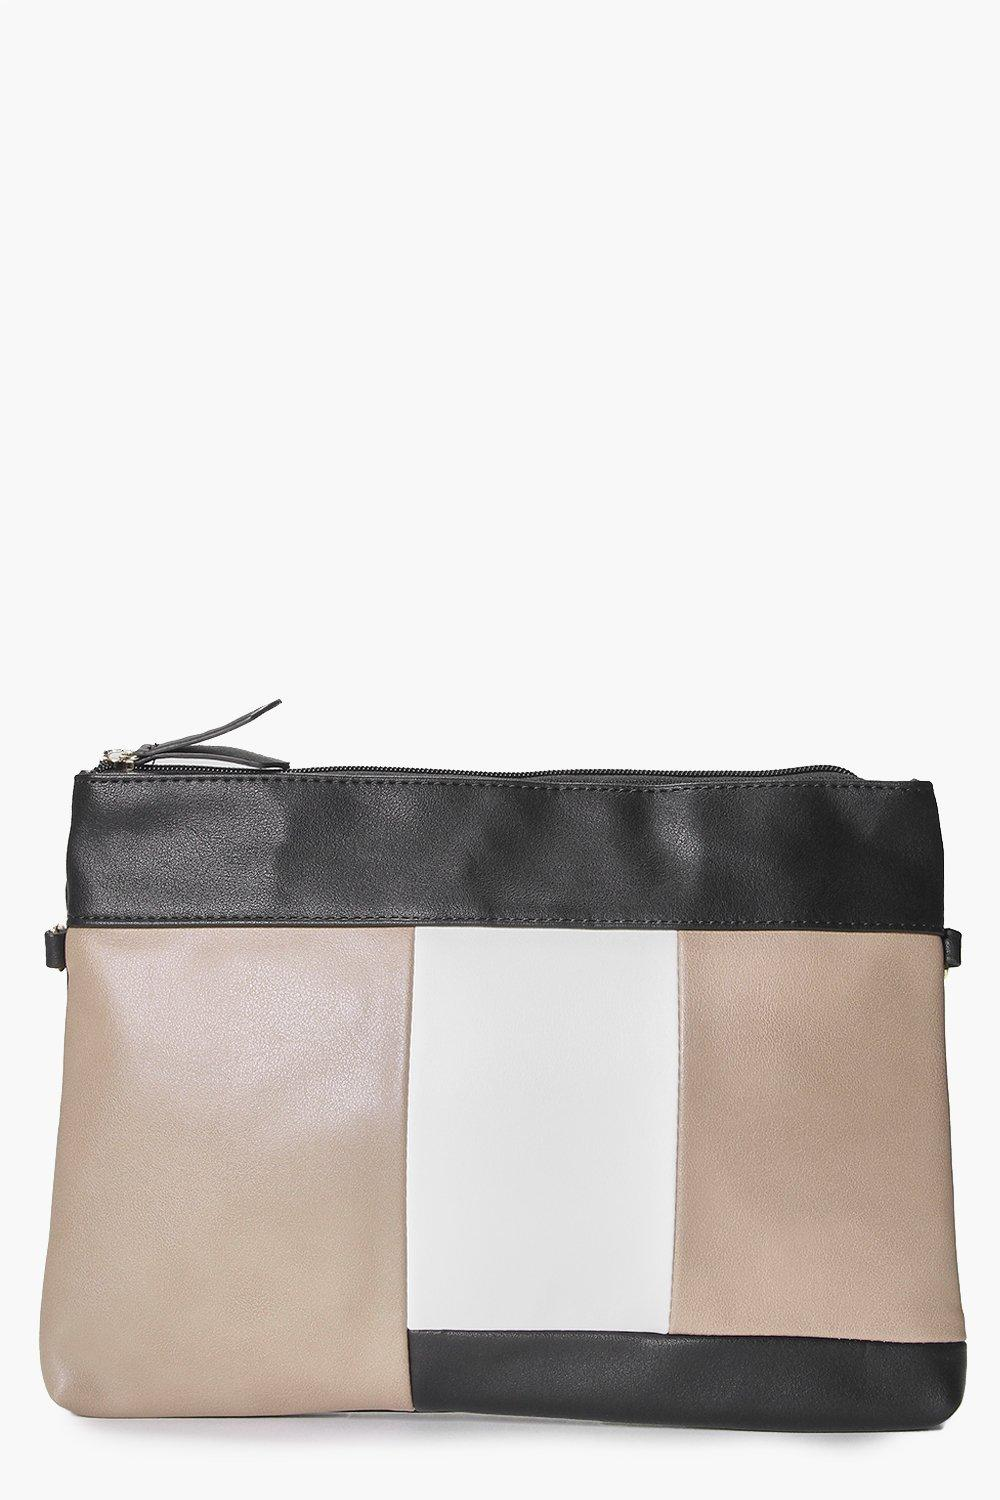 Colour Block Clutch Bag black